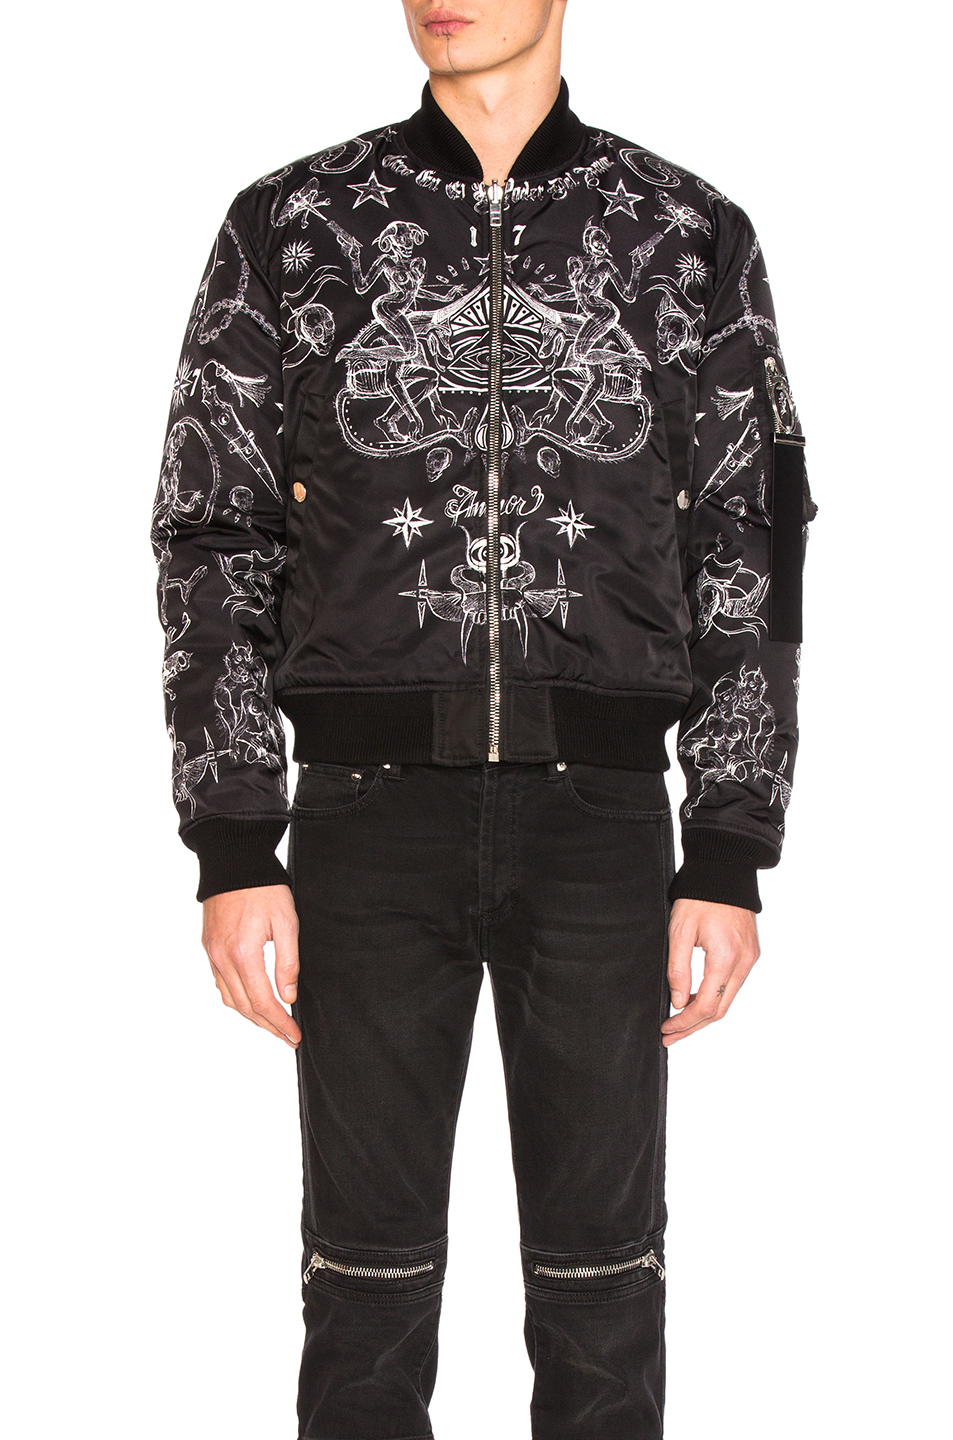 Givenchy Printed Bomber Jacket in Black